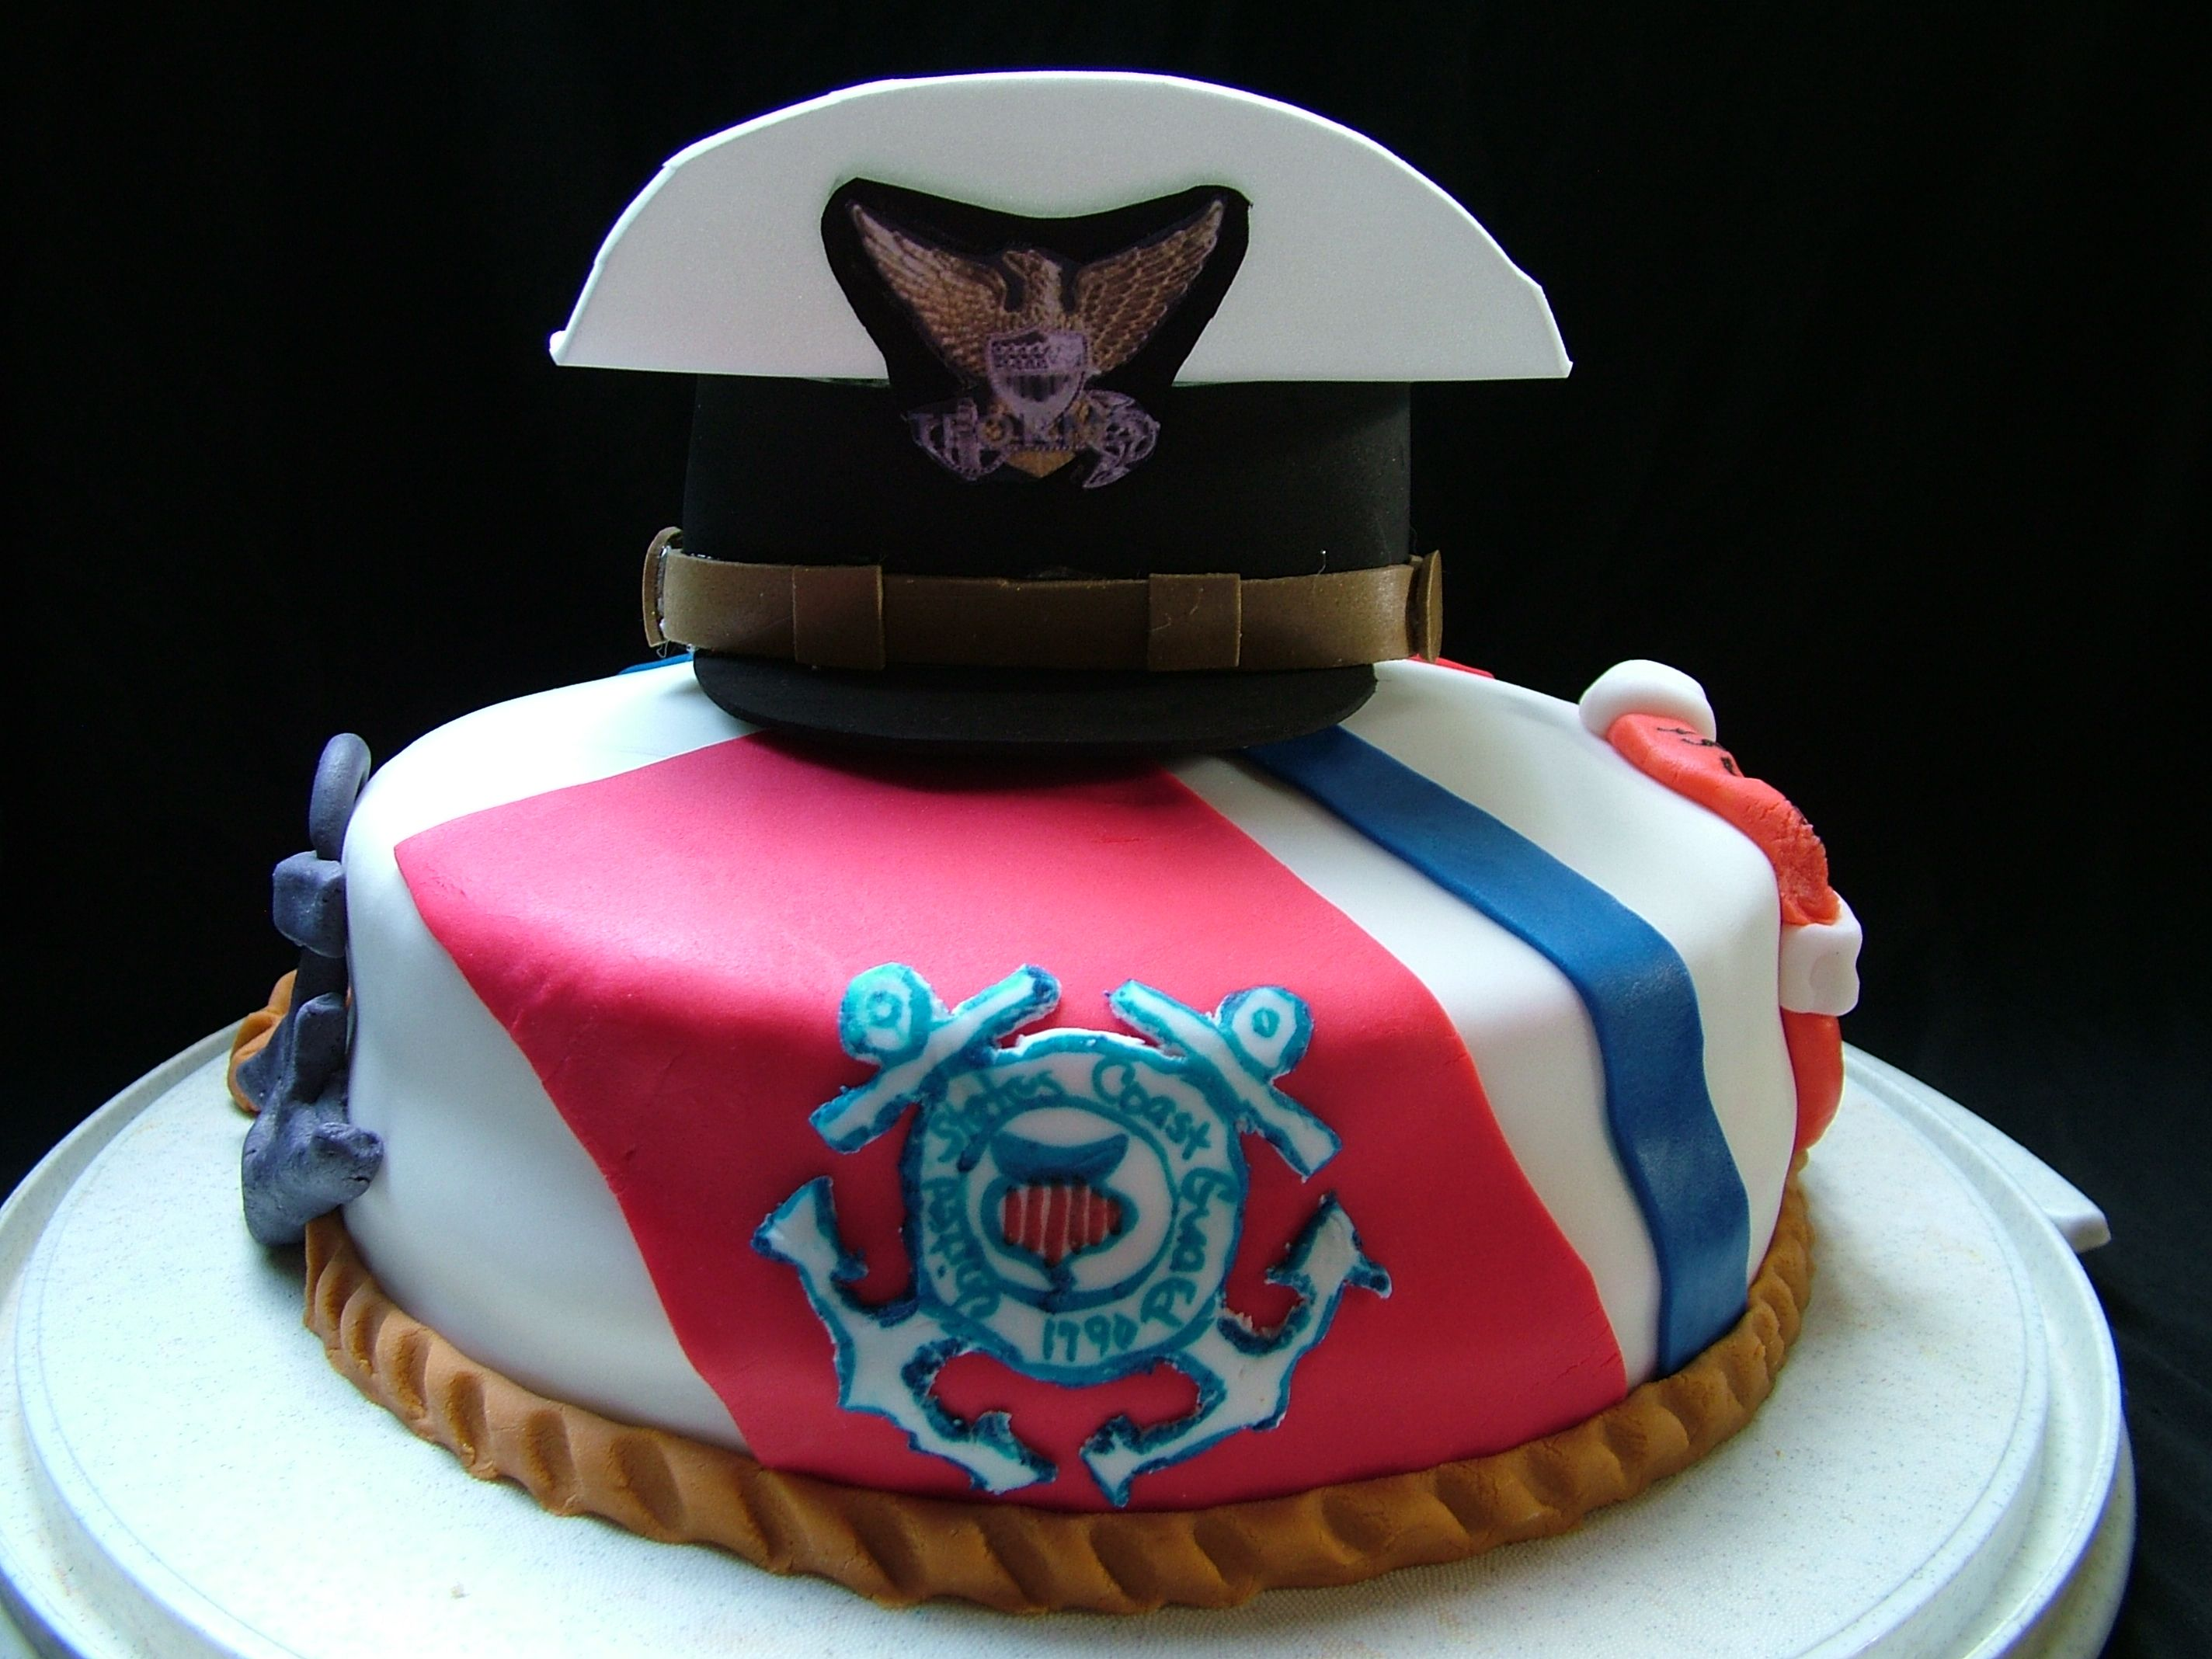 wedding cake makers central coast coast guard cake easy to make use fondant amp the hat is 23126